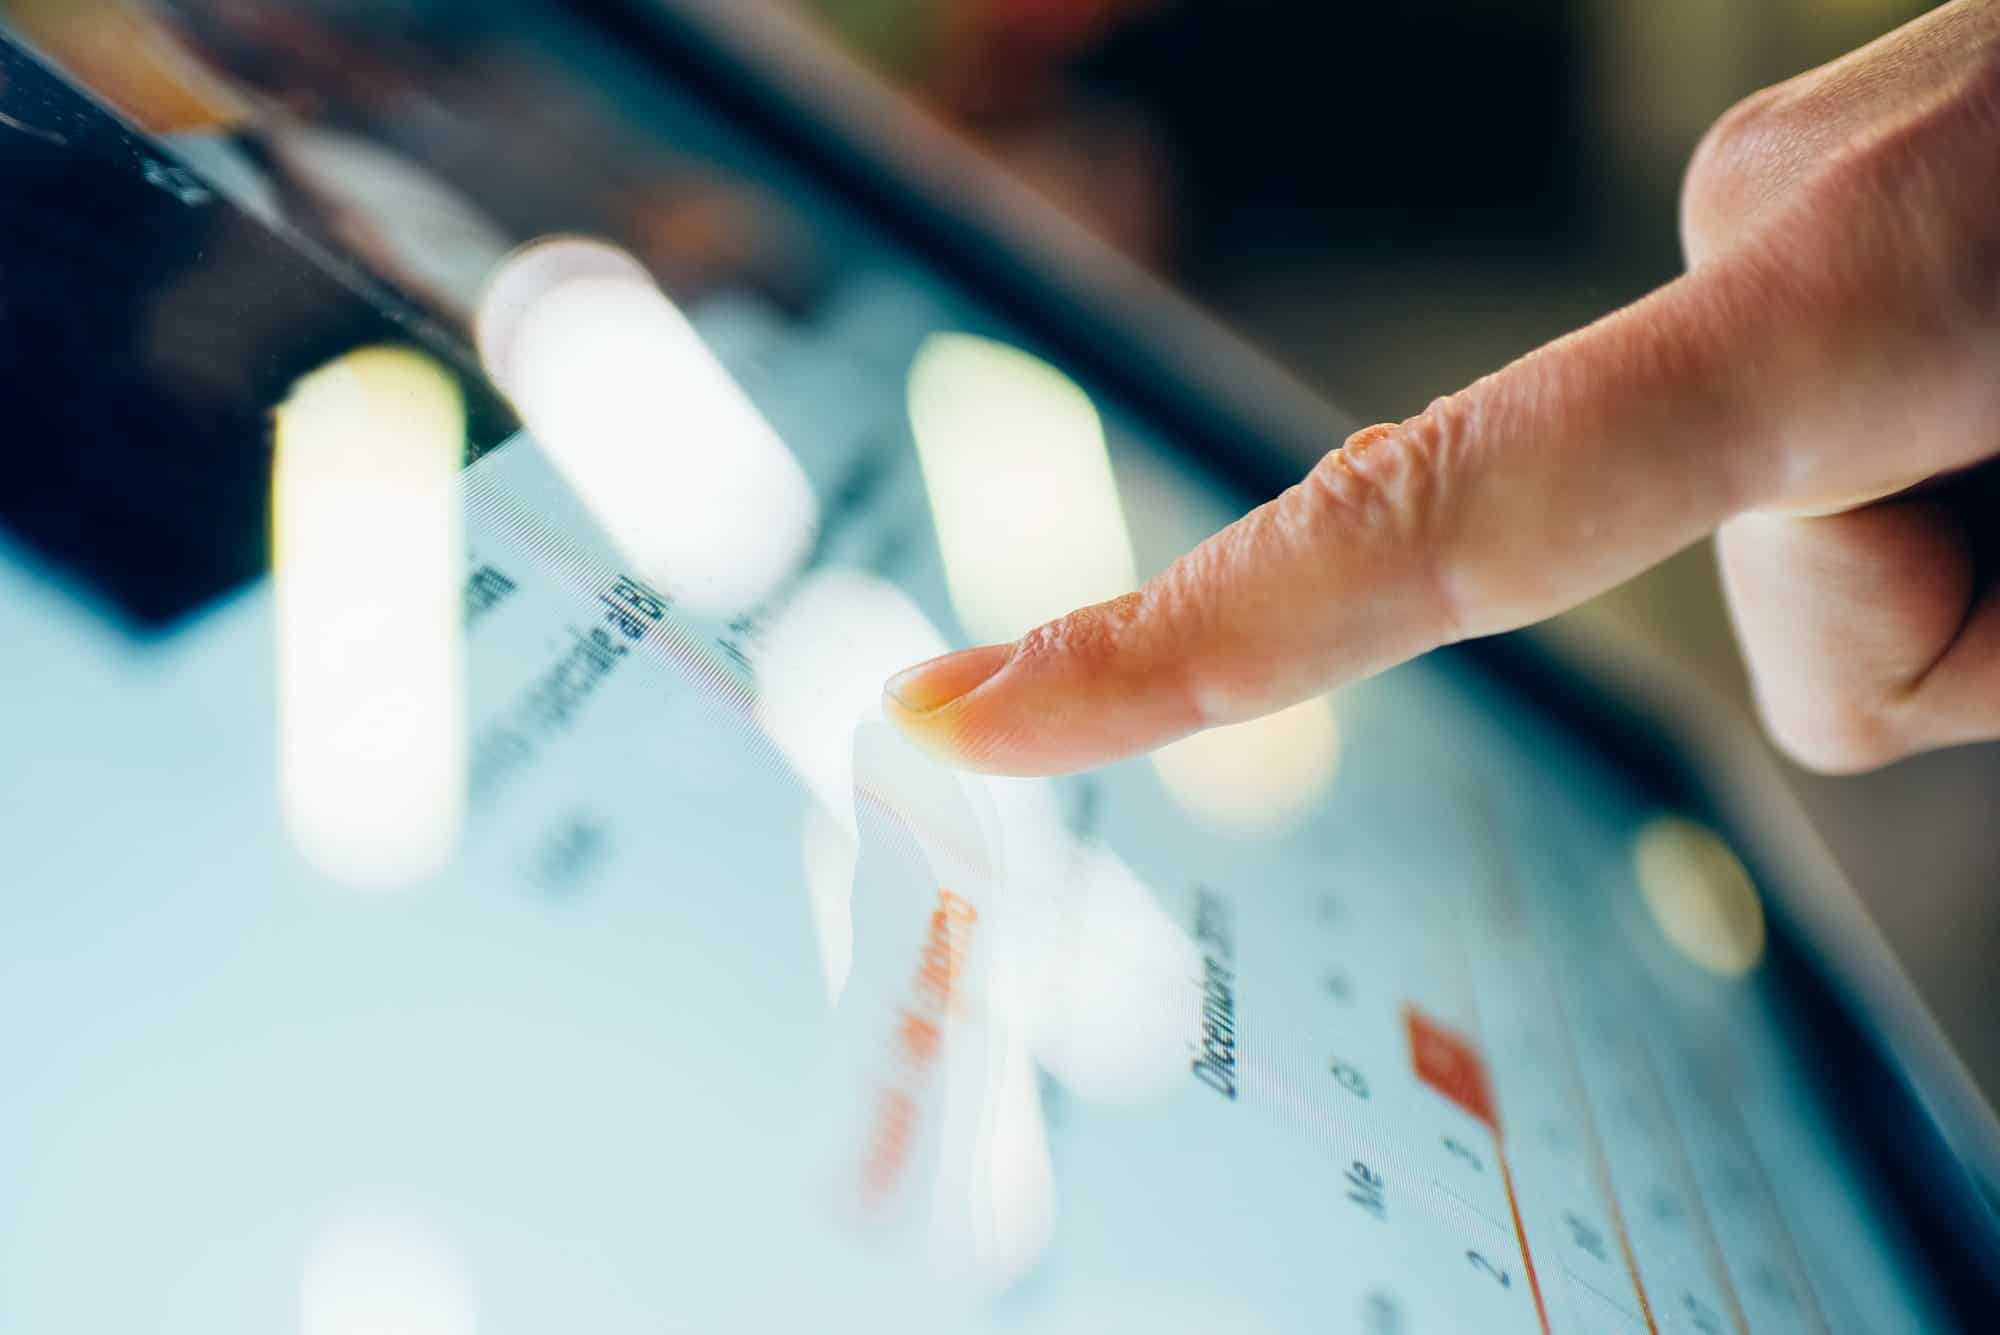 Close up on a finger touching the screen of a tablet - technolog